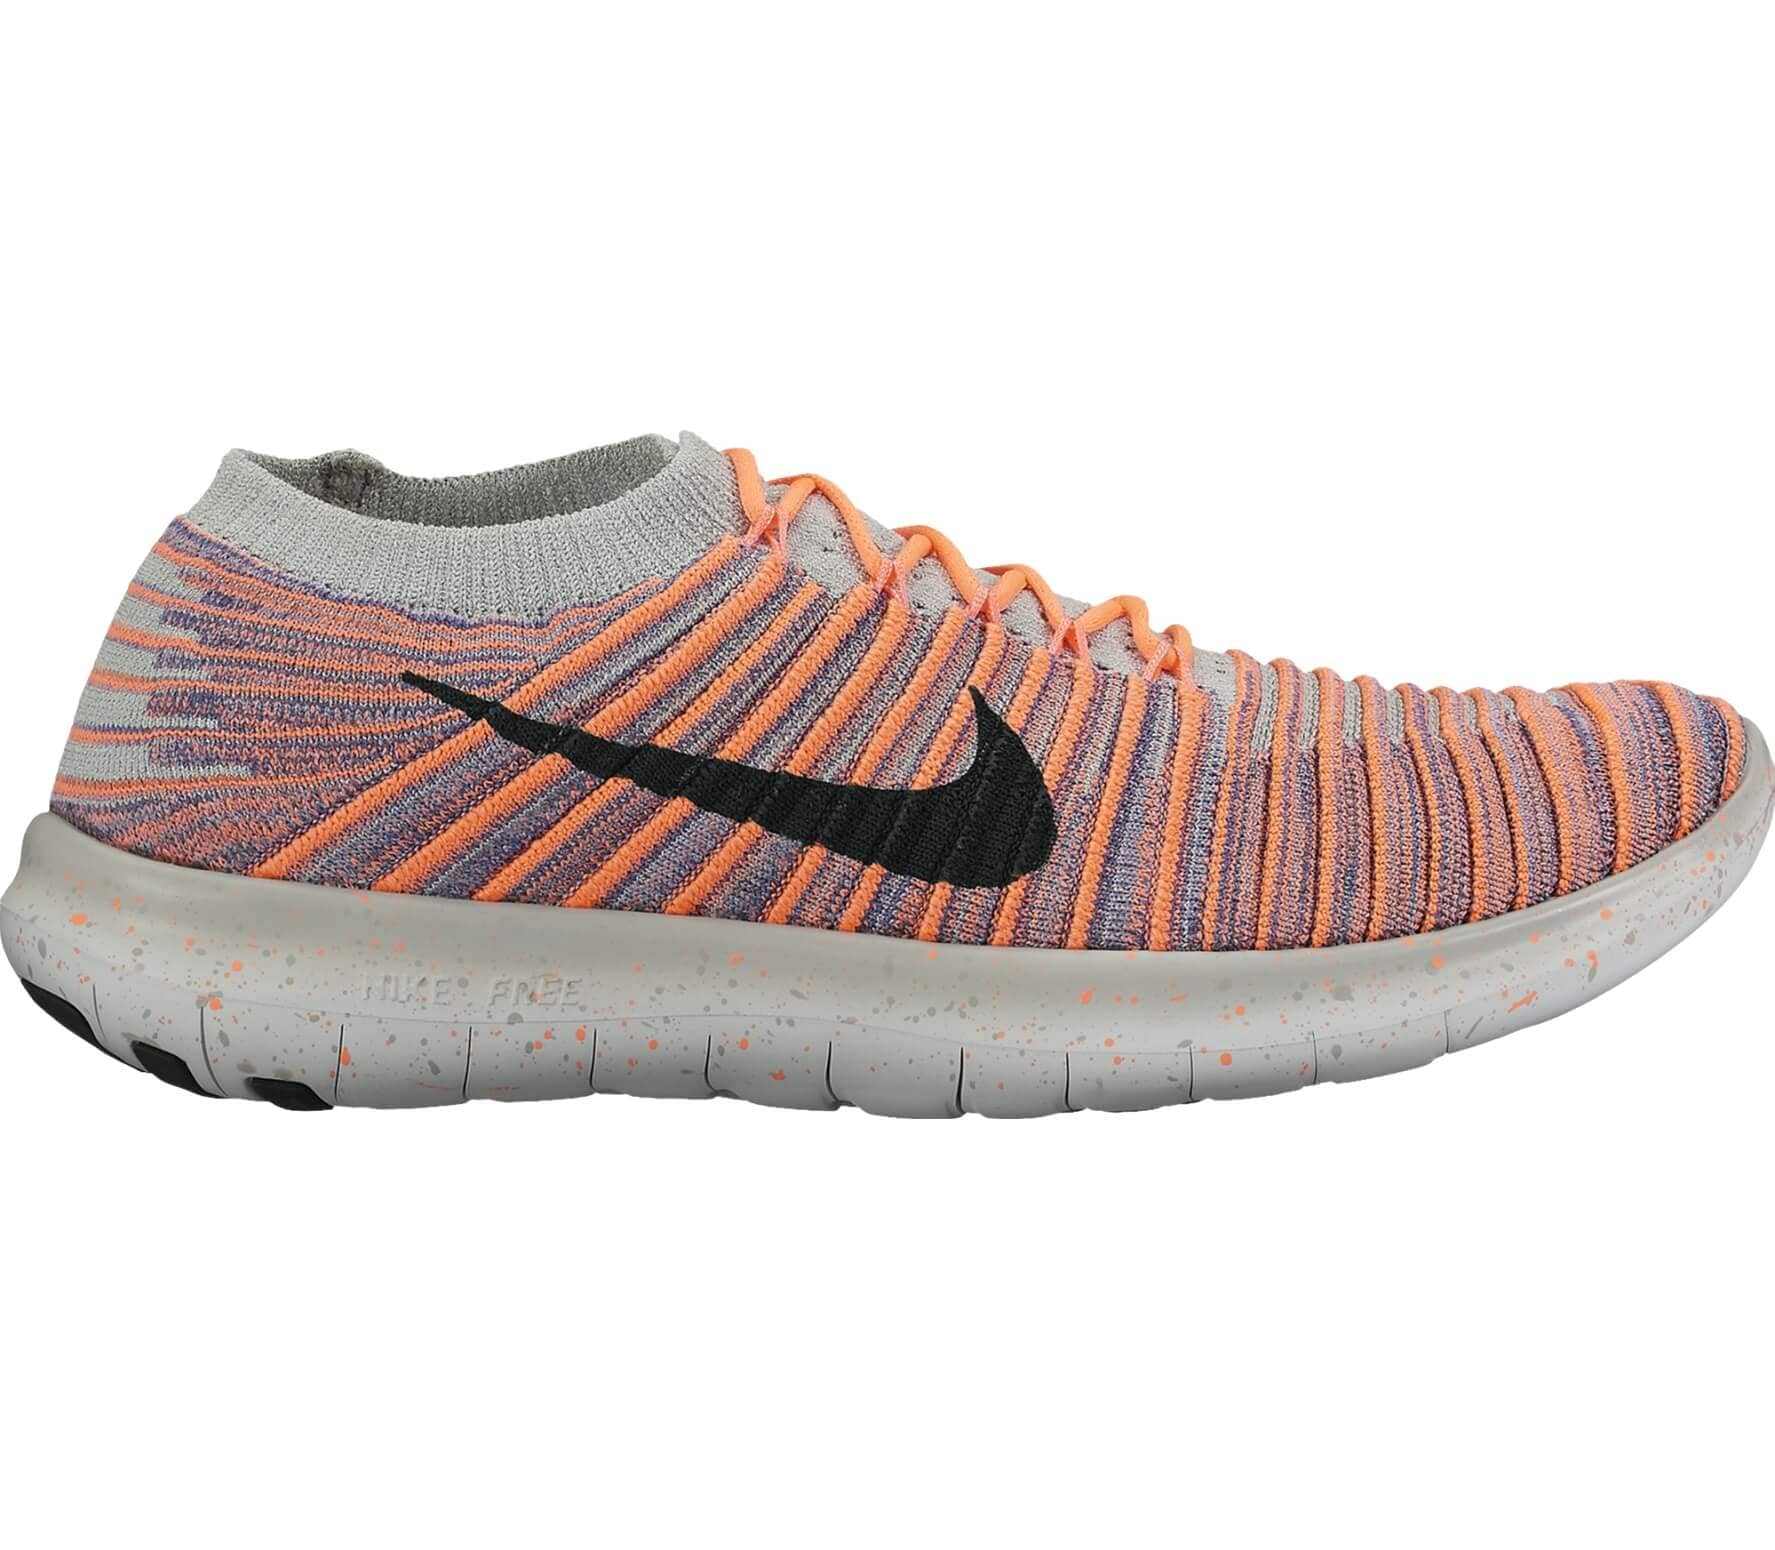 nike free run motion fly knit damen laufschuh orange. Black Bedroom Furniture Sets. Home Design Ideas